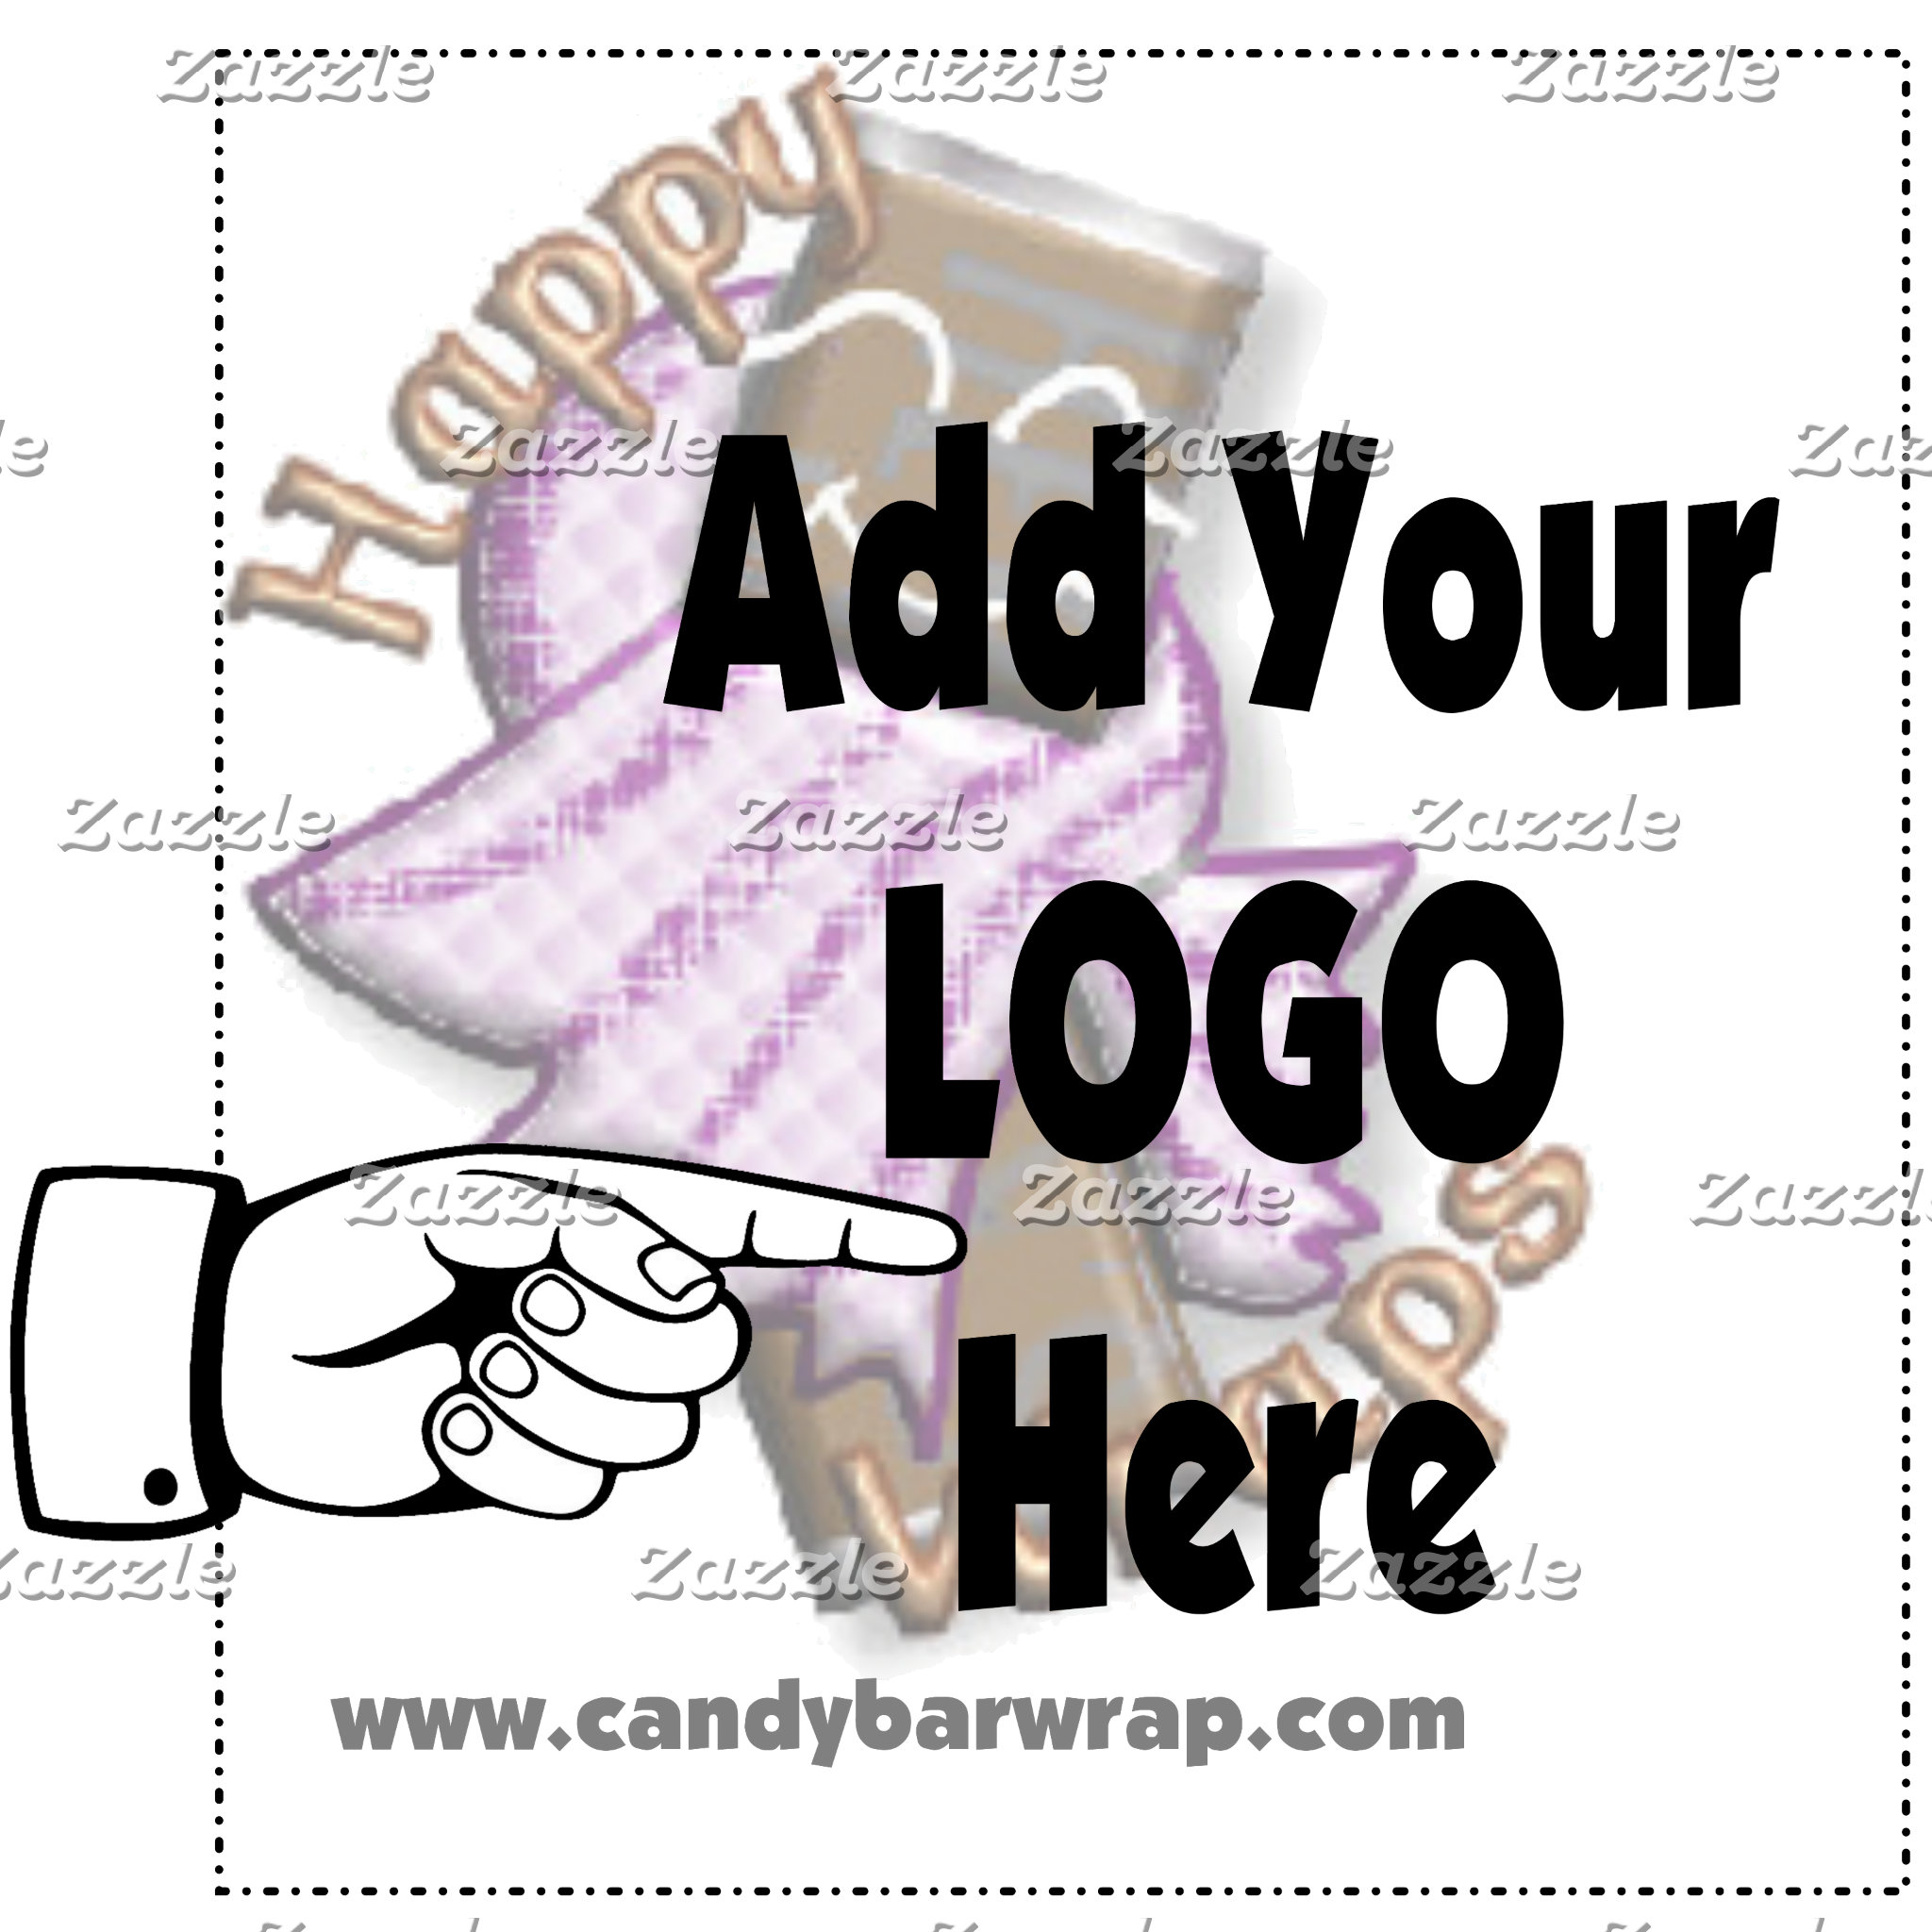 Add Your LOGO